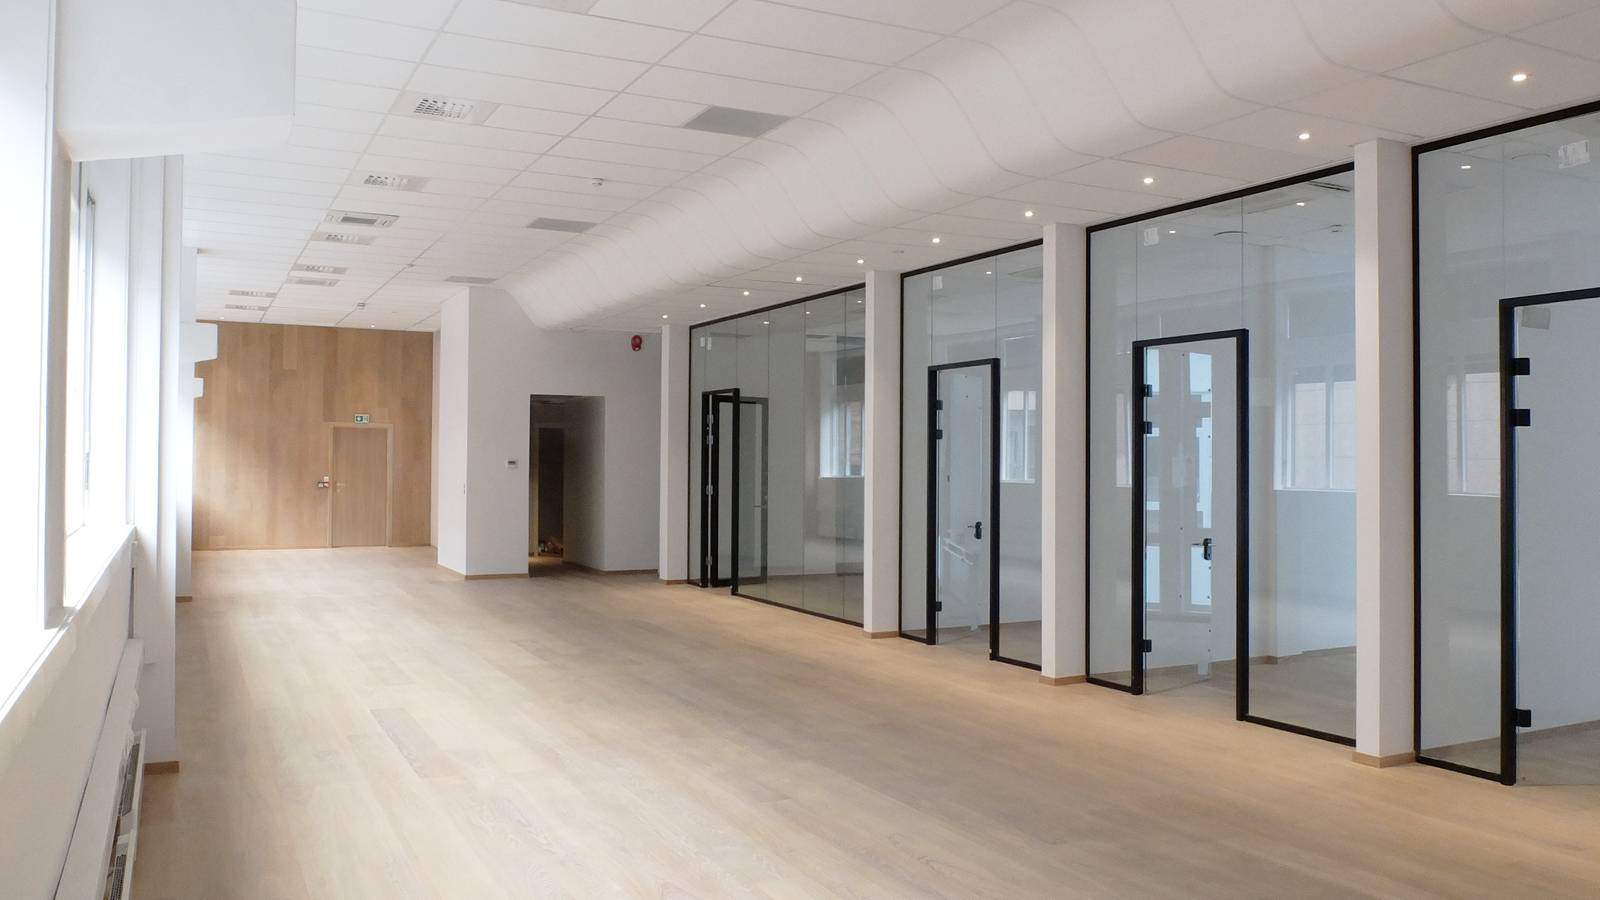 OFFICE SPACE TO LET - Frontline Offices - SPOL Architects